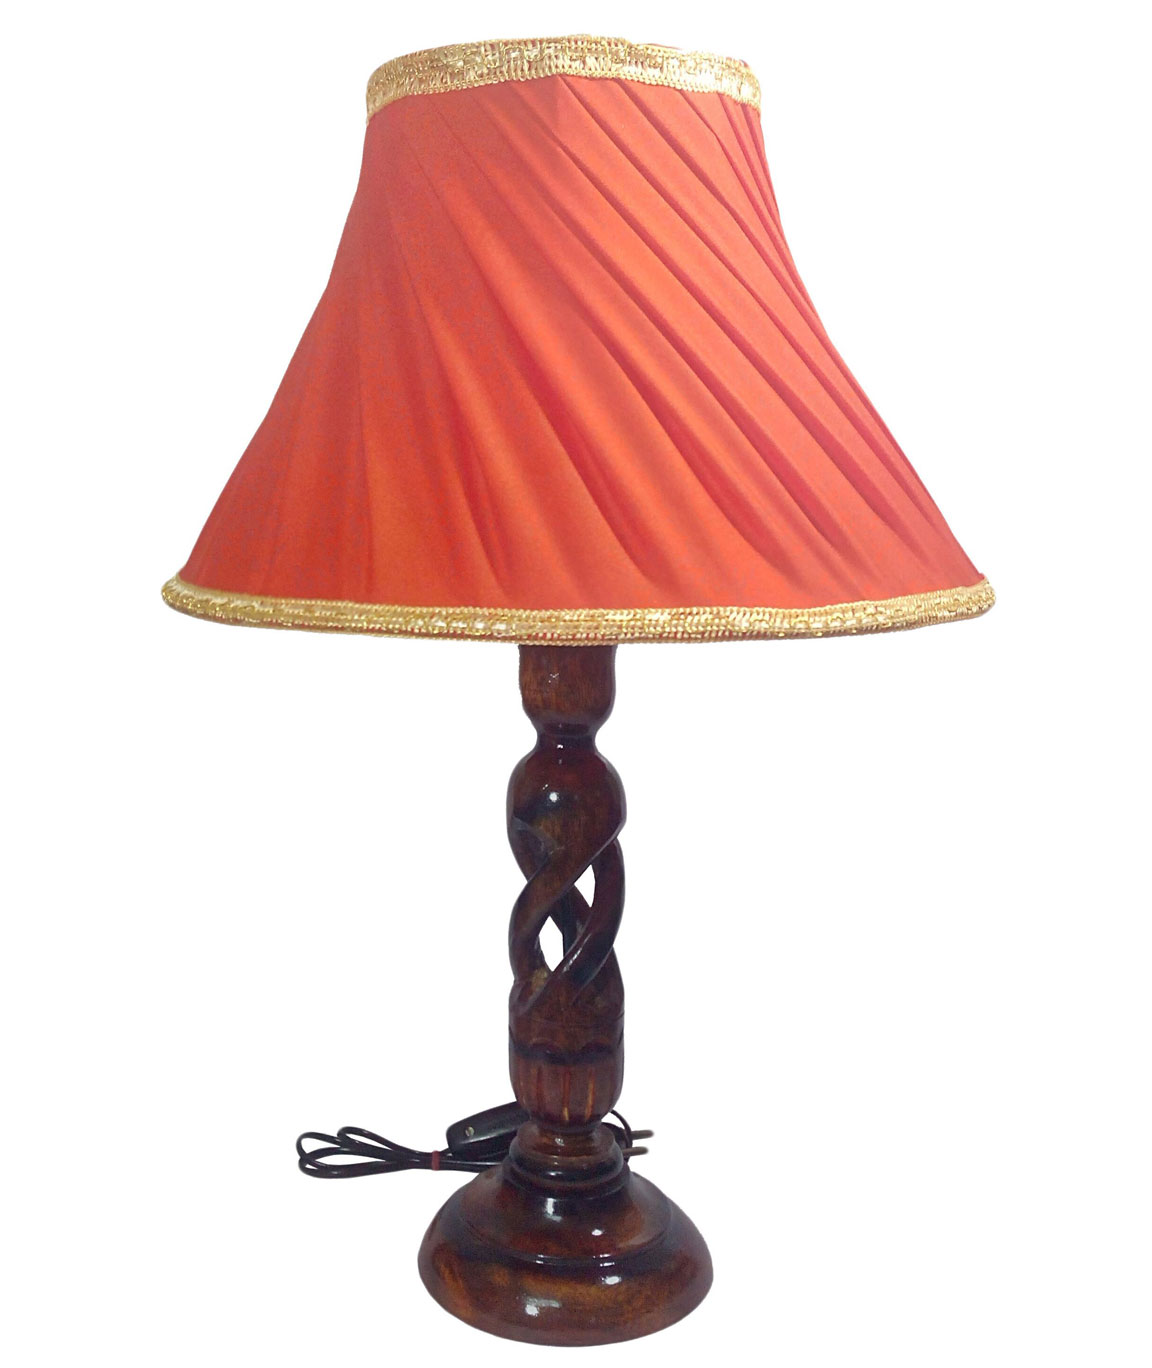 RDC Wooden Designer Table Lamp with 12 Inches Round Slanting Orange with Golden Border Lamp Shade